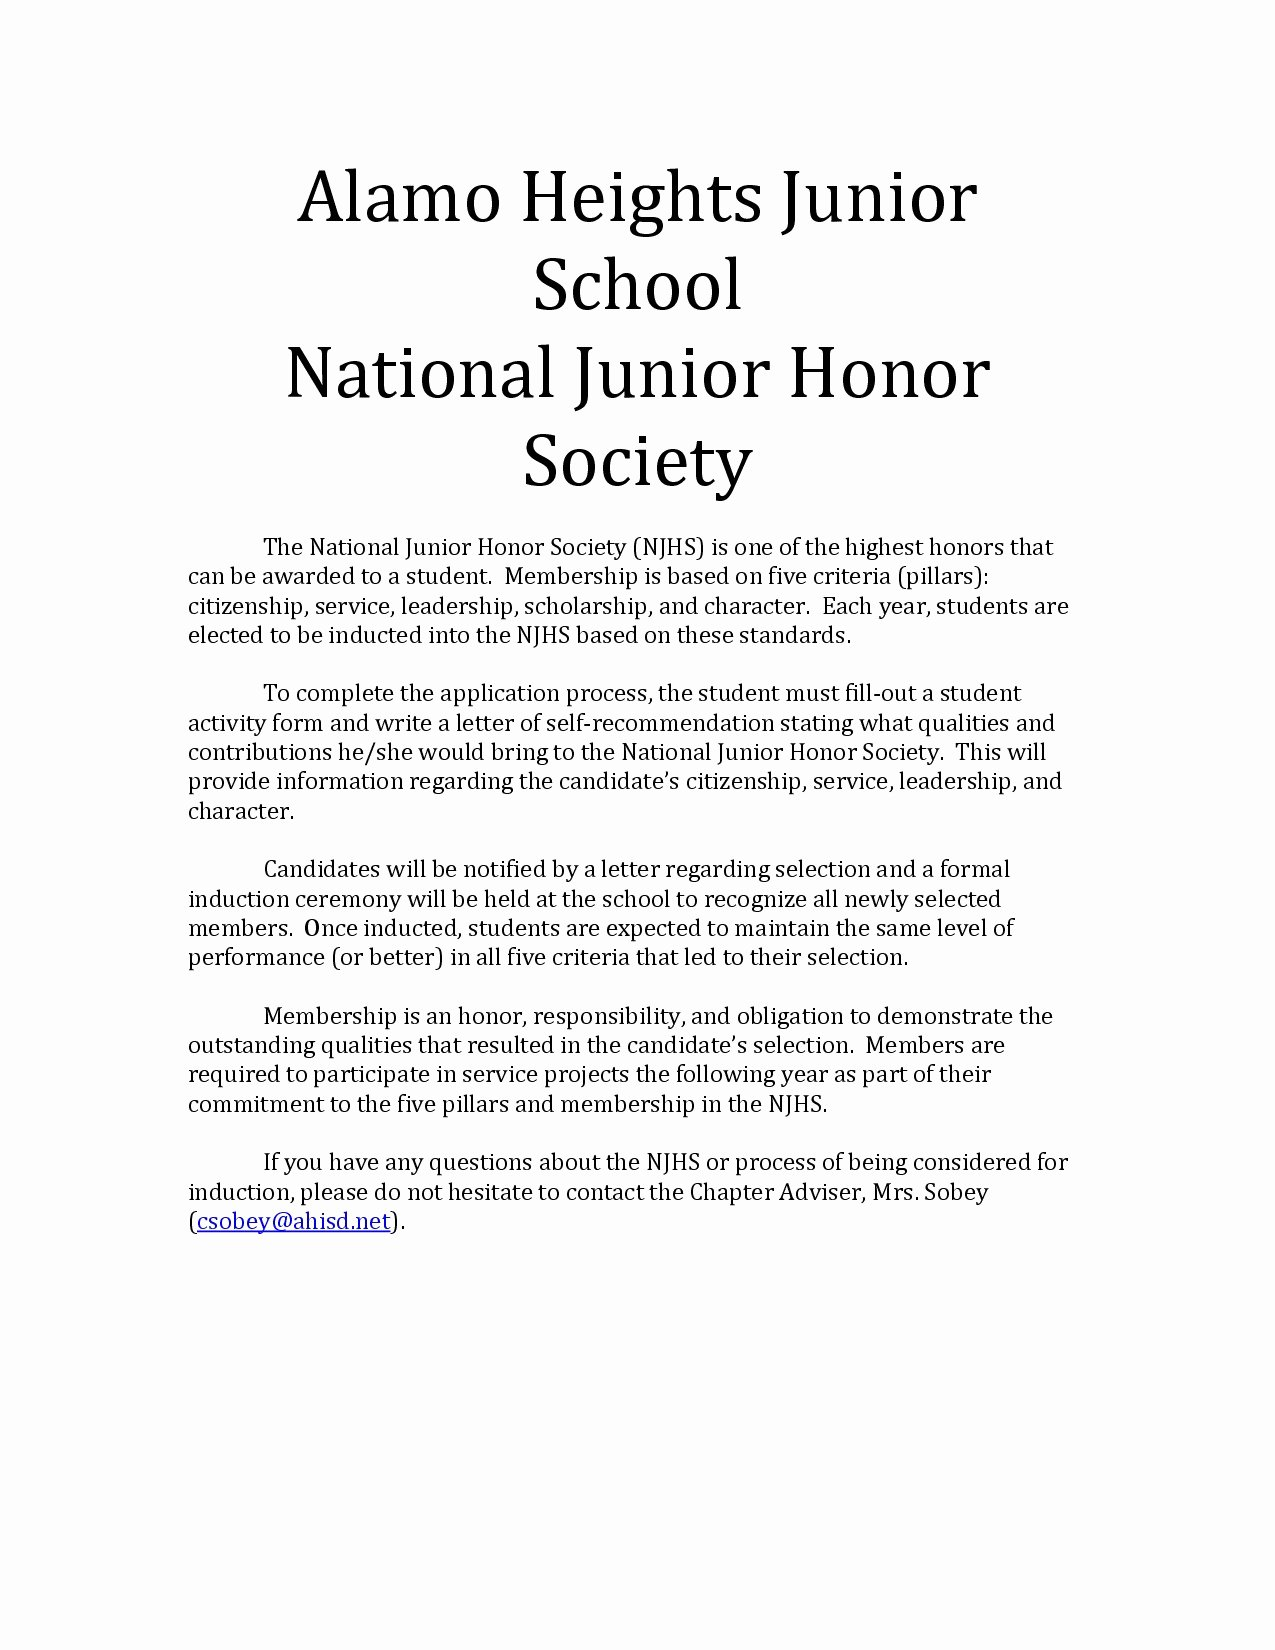 Recommendation Letter for Honor society Beautiful Re Mendation Letter for Design Student Best Re Mendation